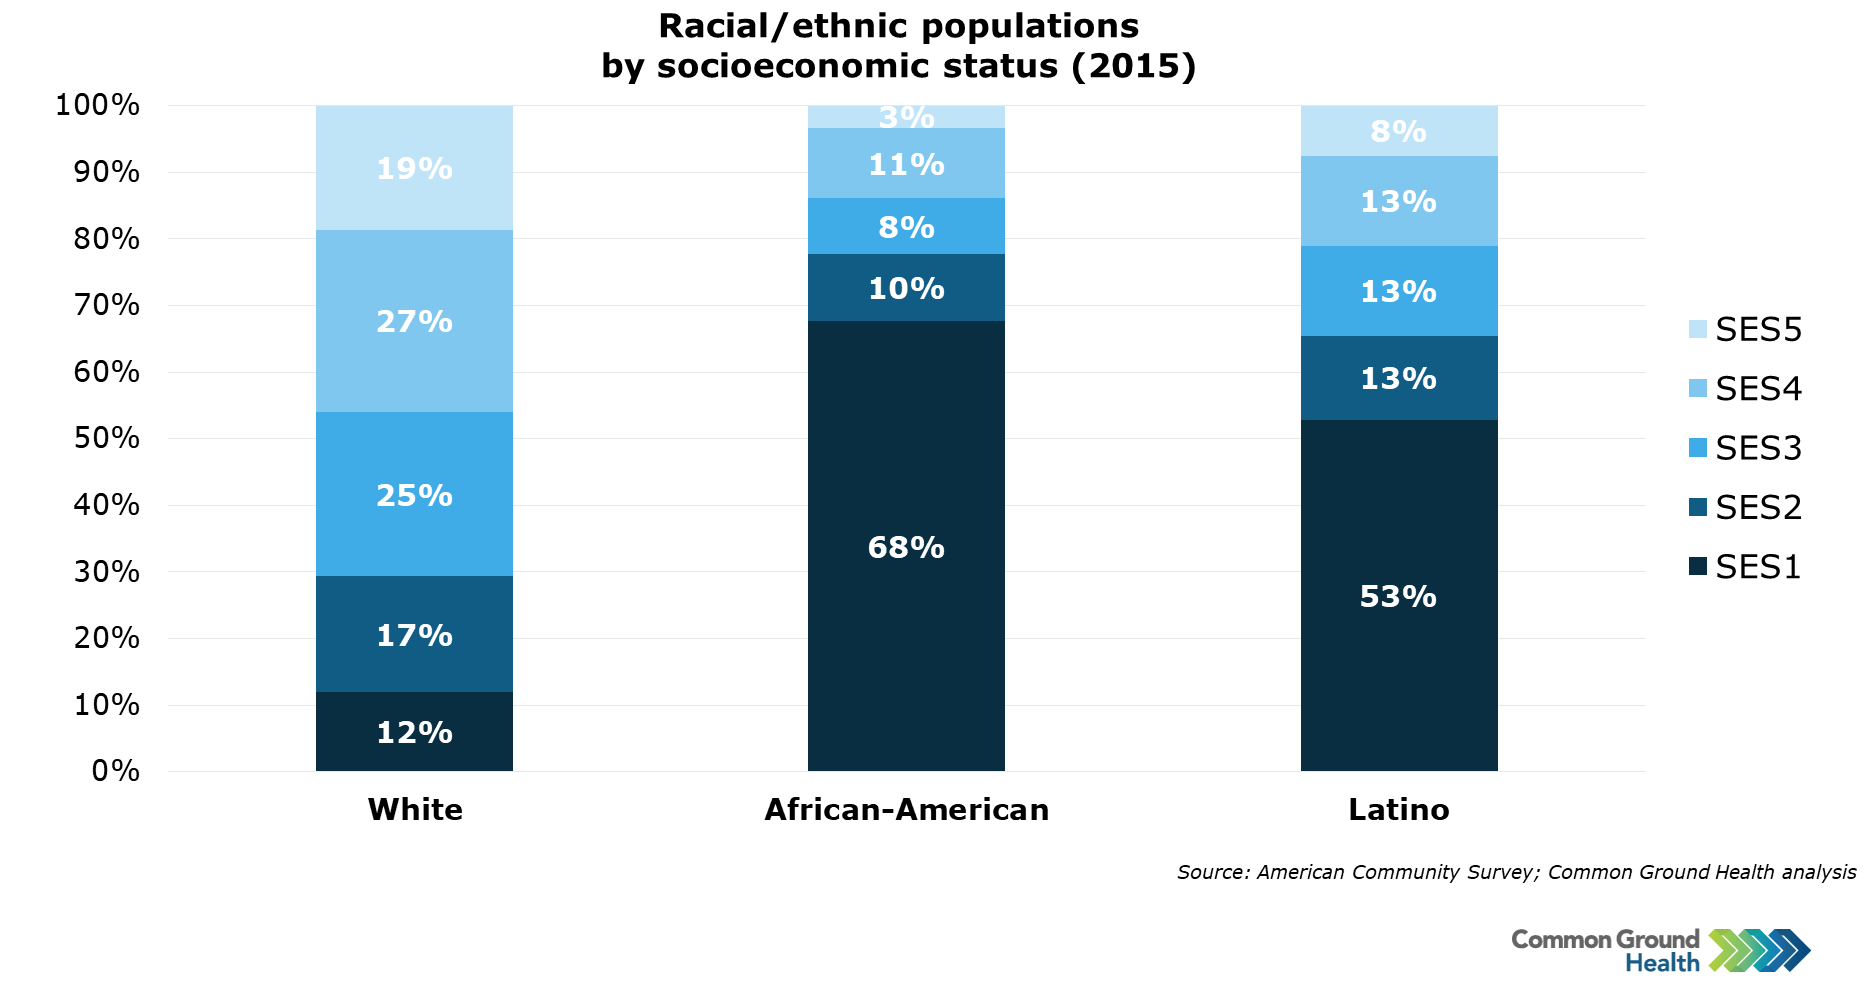 Racial/Ethnic Populations by Socioeconomic Status